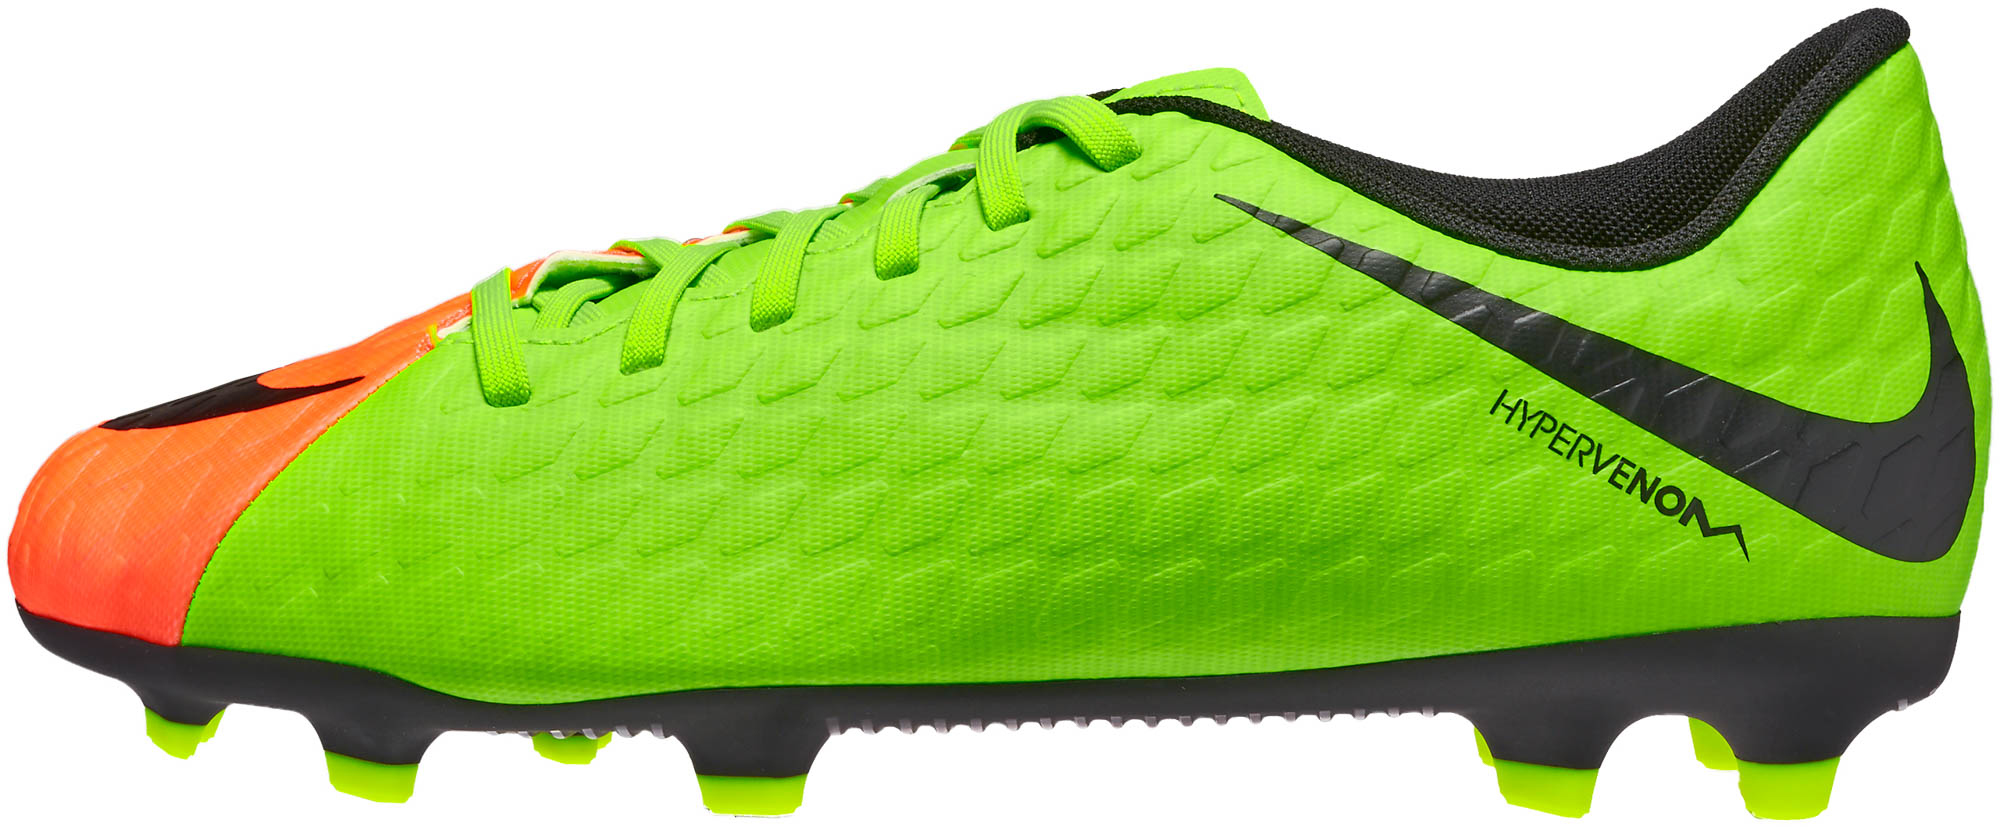 5cca3047cec9c Nike Kids Hypervenom Phade III FG Soccer Cleats - Electric Green ...